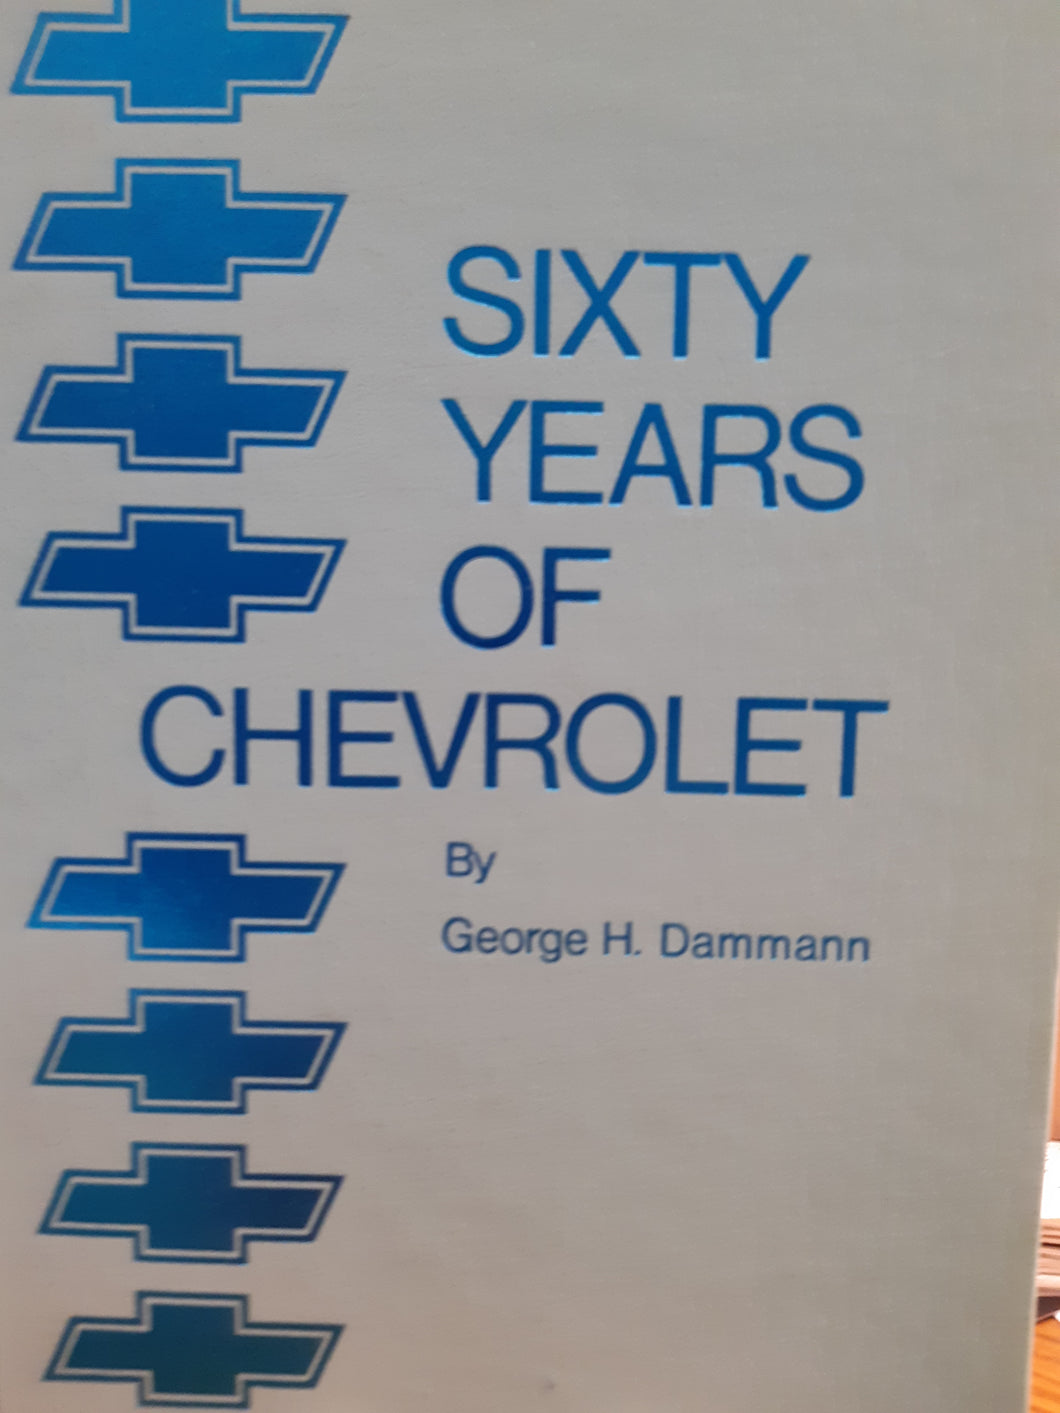 60 Years of Chevrolet